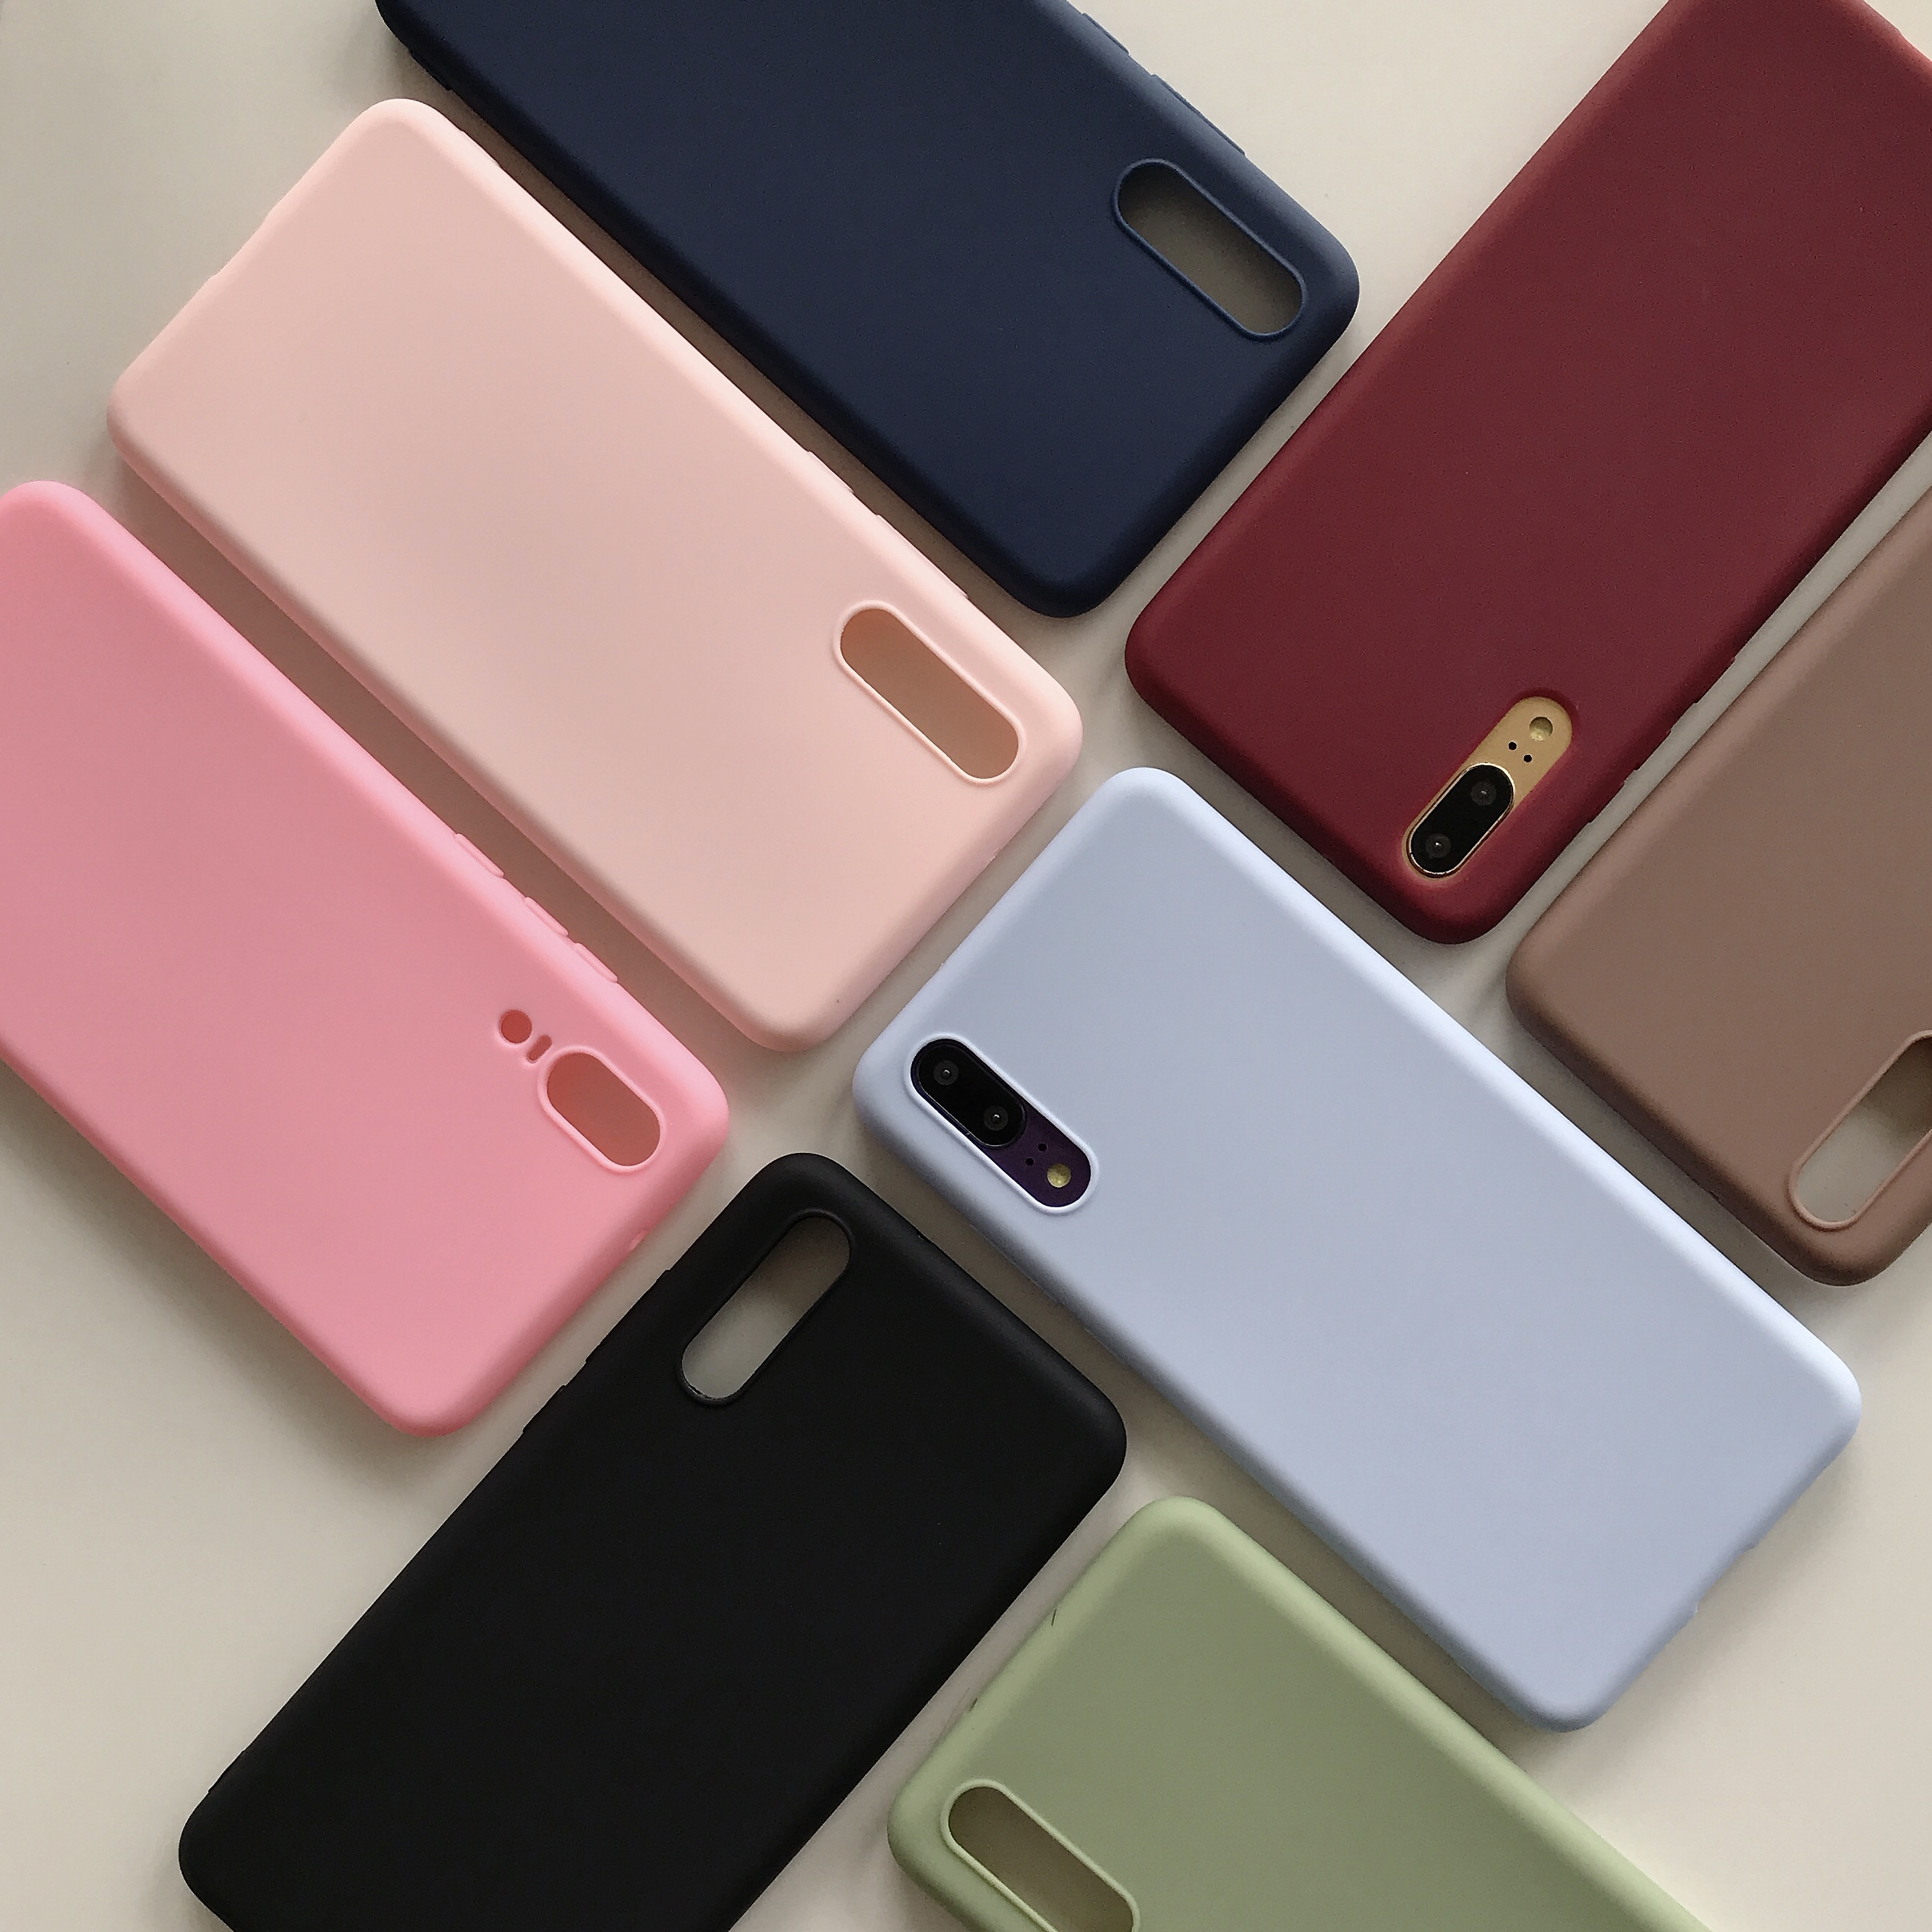 TPU Soft <font><b>Case</b></font> <font><b>Huawei</b></font> Honor 8A 8X 8S 8C <font><b>Case</b></font> <font><b>360</b></font> Protect Silicone Back Cover For Coque <font><b>Huawei</b></font> Y5 Y6 <font><b>Y7</b></font> Prime <font><b>2019</b></font> 2018 <font><b>Case</b></font> cover image